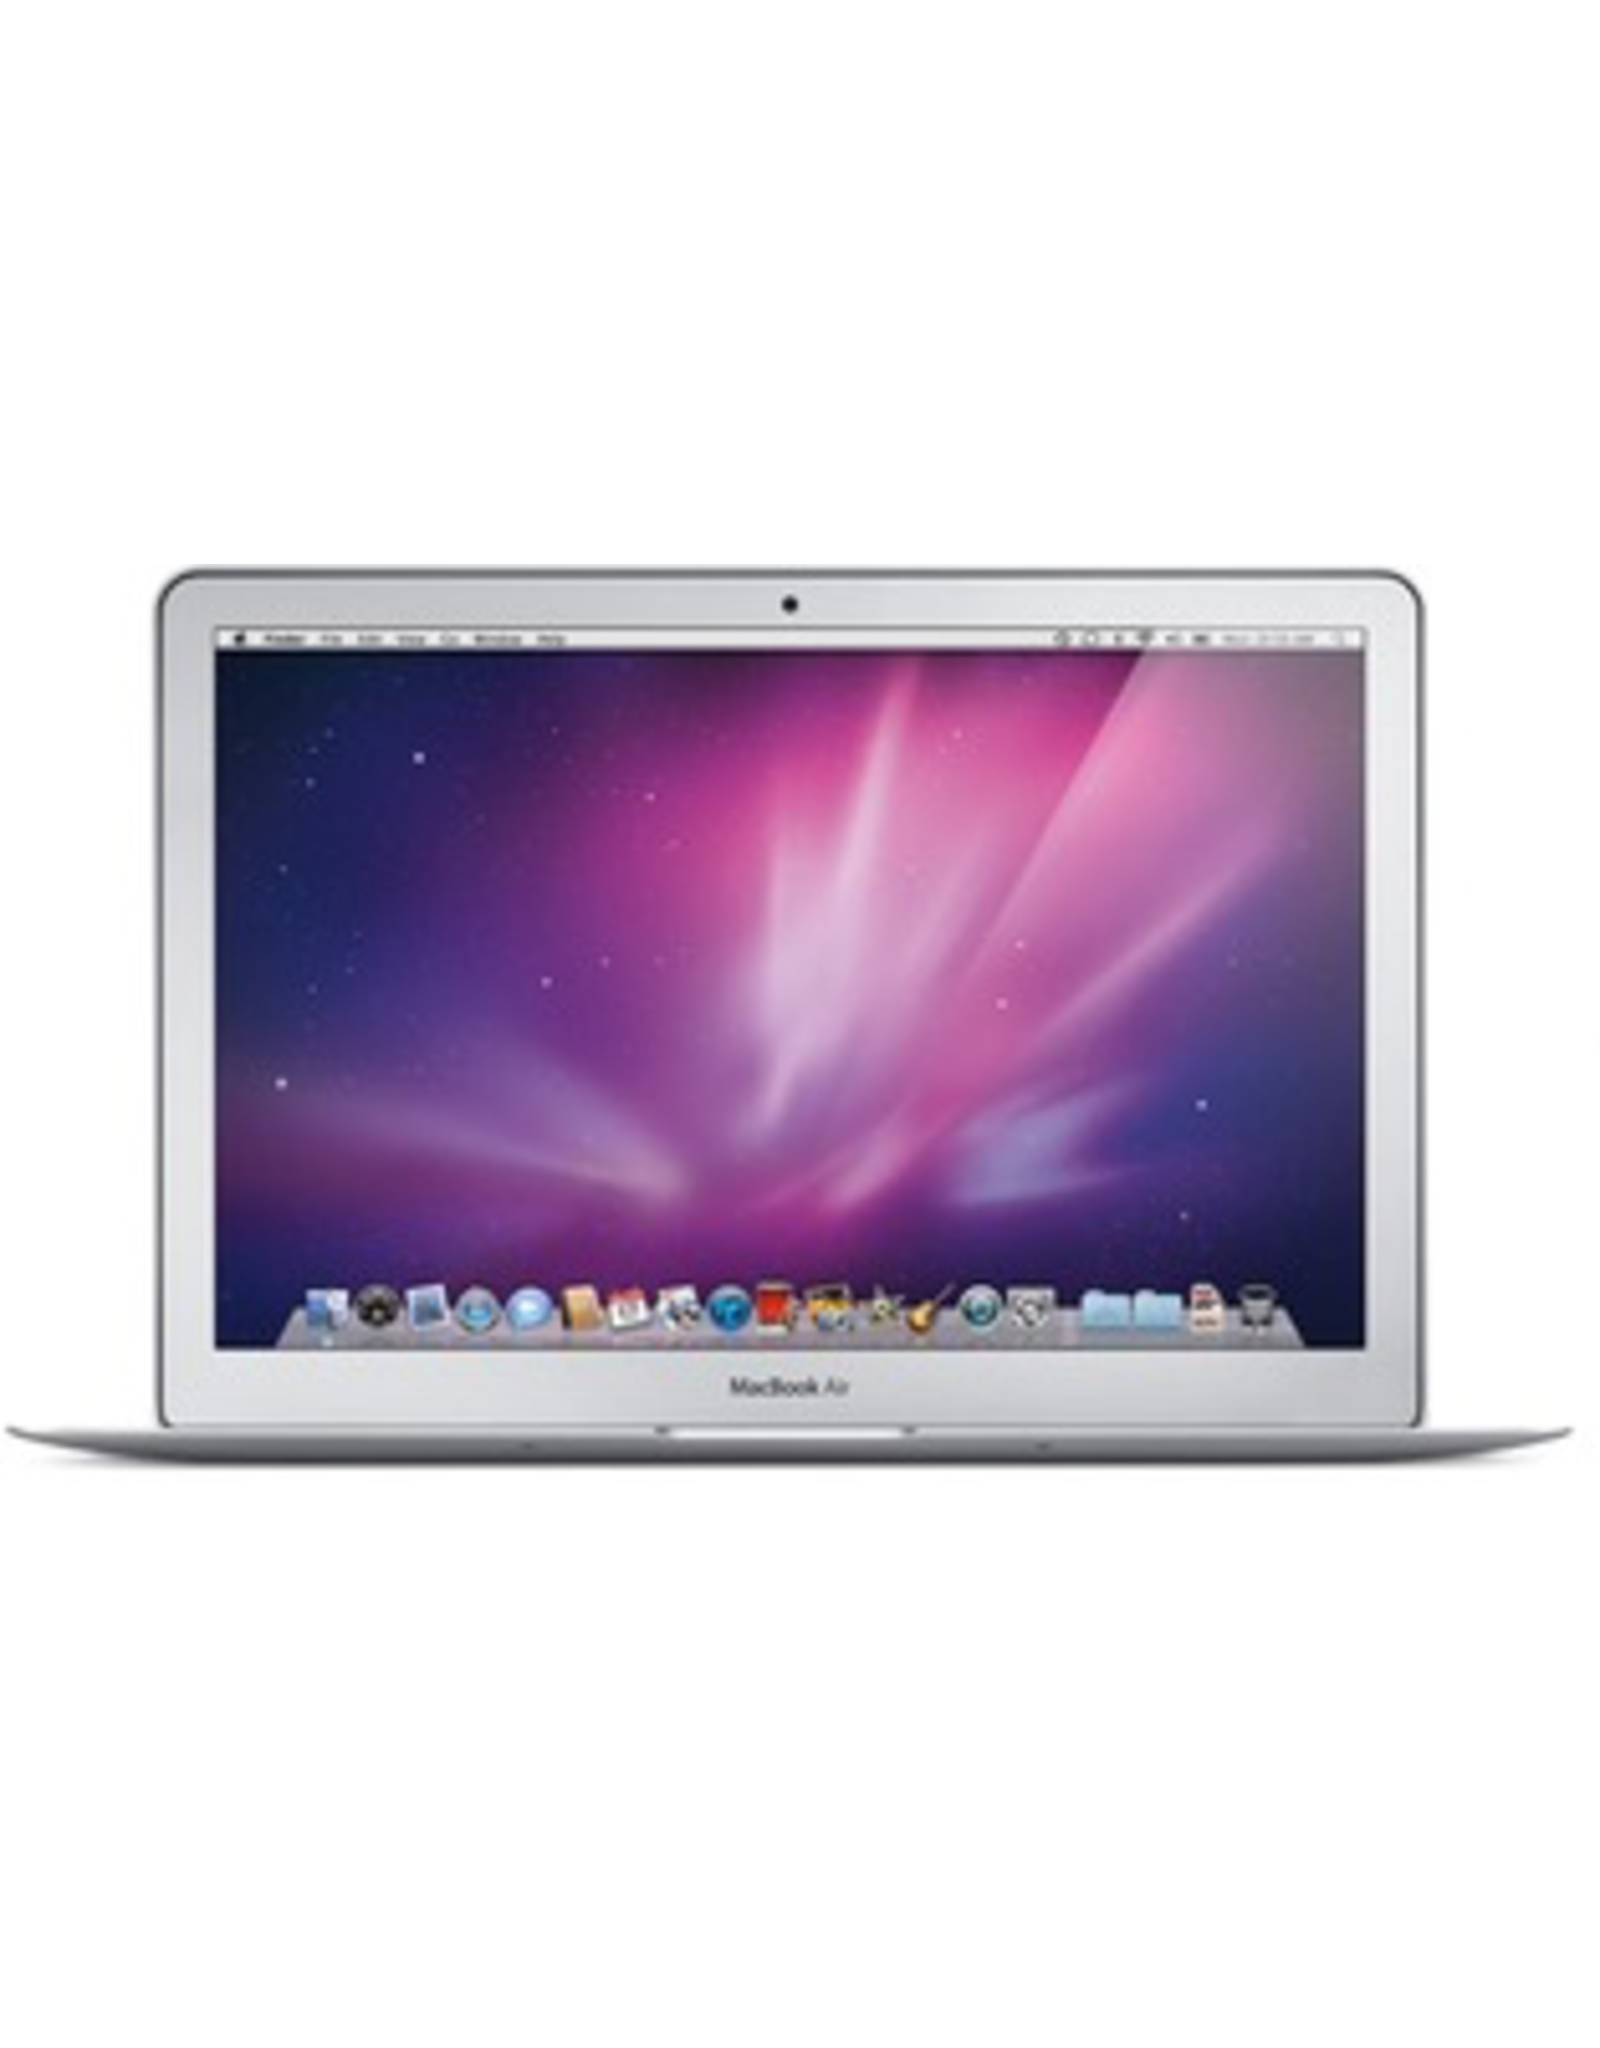 Apple MacBook Air (13-inch, Late 2010) - Intel Core 2 Duo 1.86 GHz / 250 GB SSD / 2 GB RAM - 30 Day Exchange